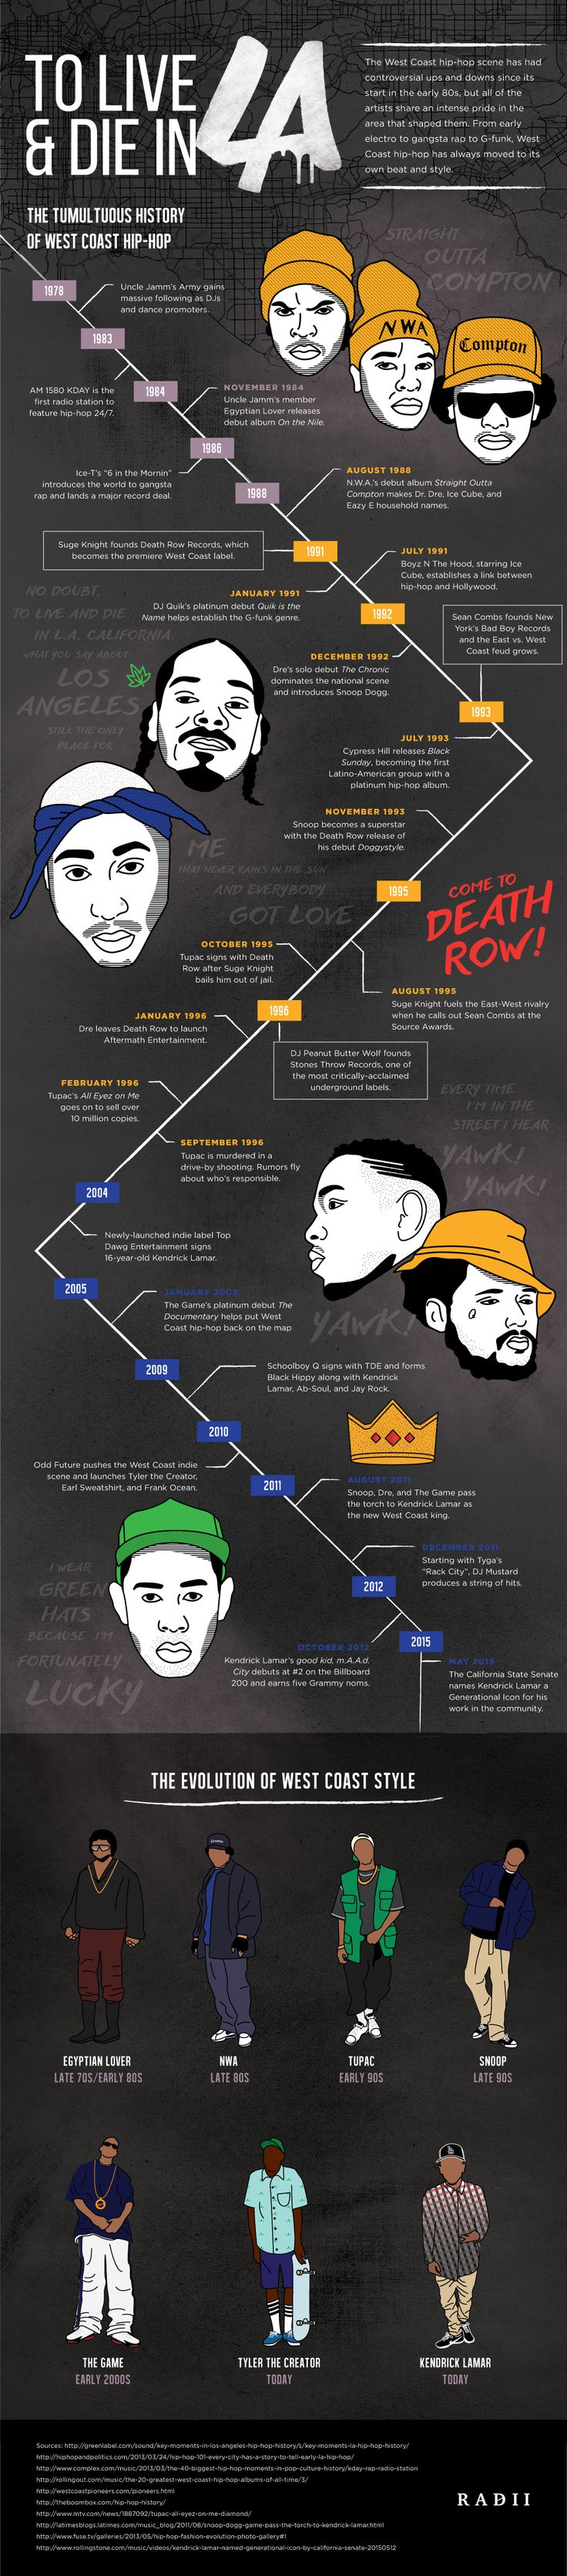 With the world going Straight Outta Compton crazy, this graphic will improve your hip-hop knowledge. Los Angeles hip hop history - the lowdown on West Coast hip-hop